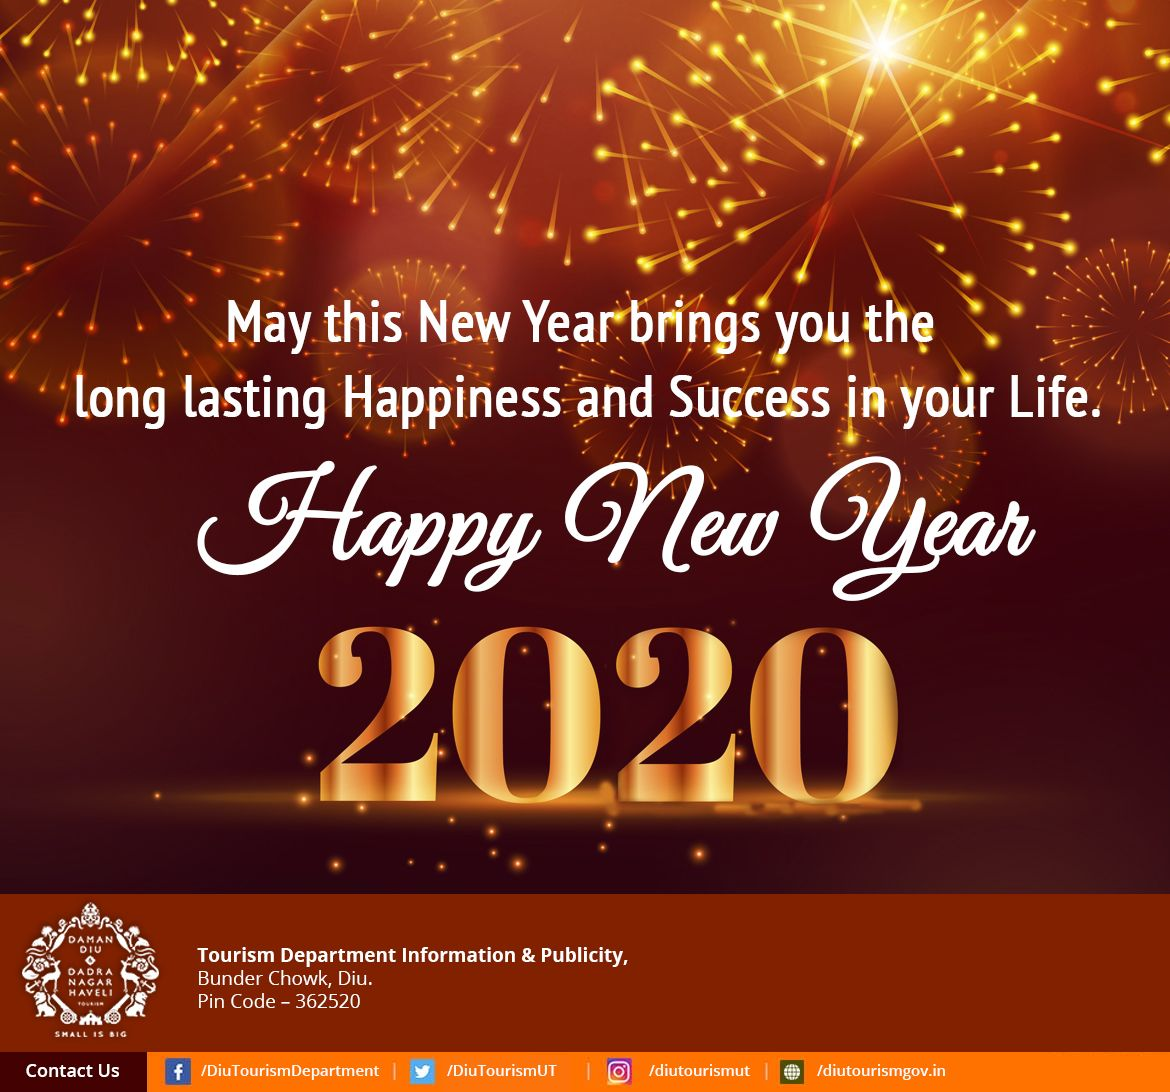 May This New Year Brings You The Long Lasting Happiness And